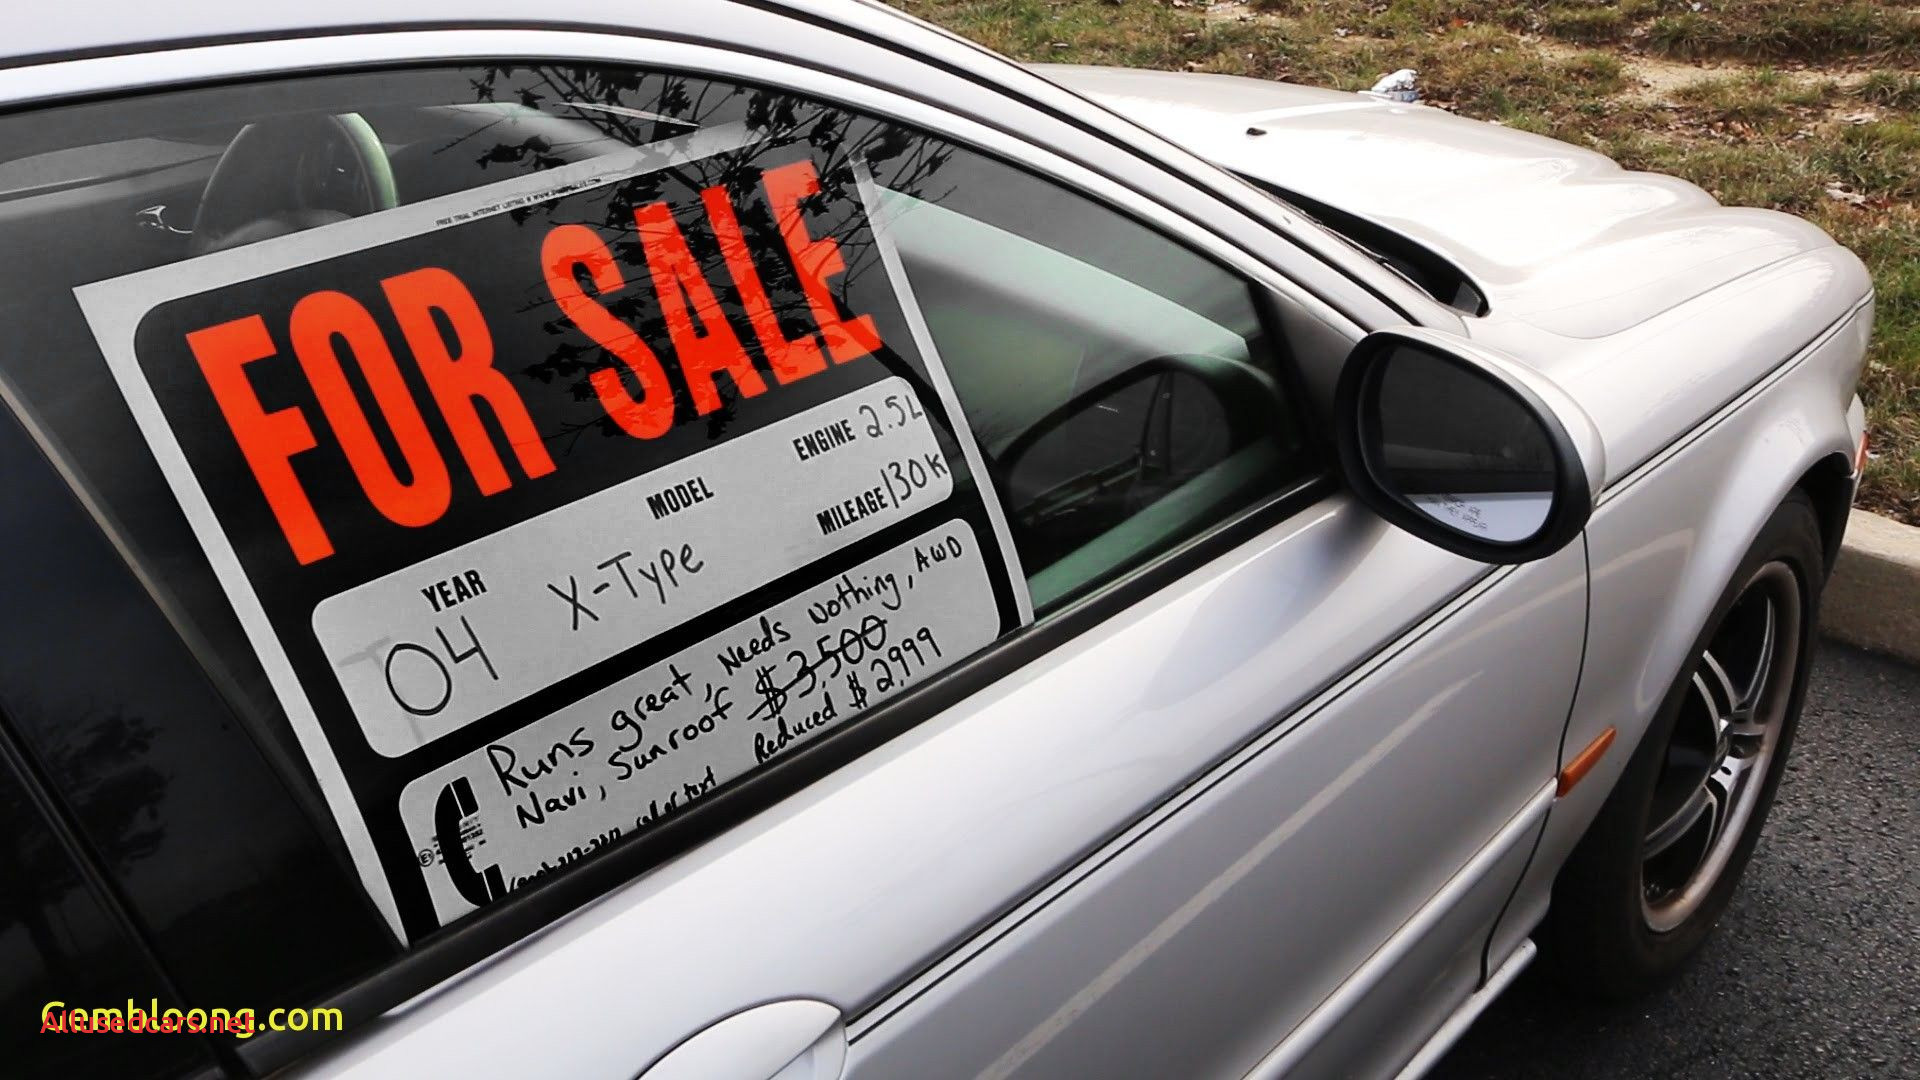 Used Cars for Sale 30000 Fresh Fresh where to Buy Used Cars Near Me Wel E to Be Able to